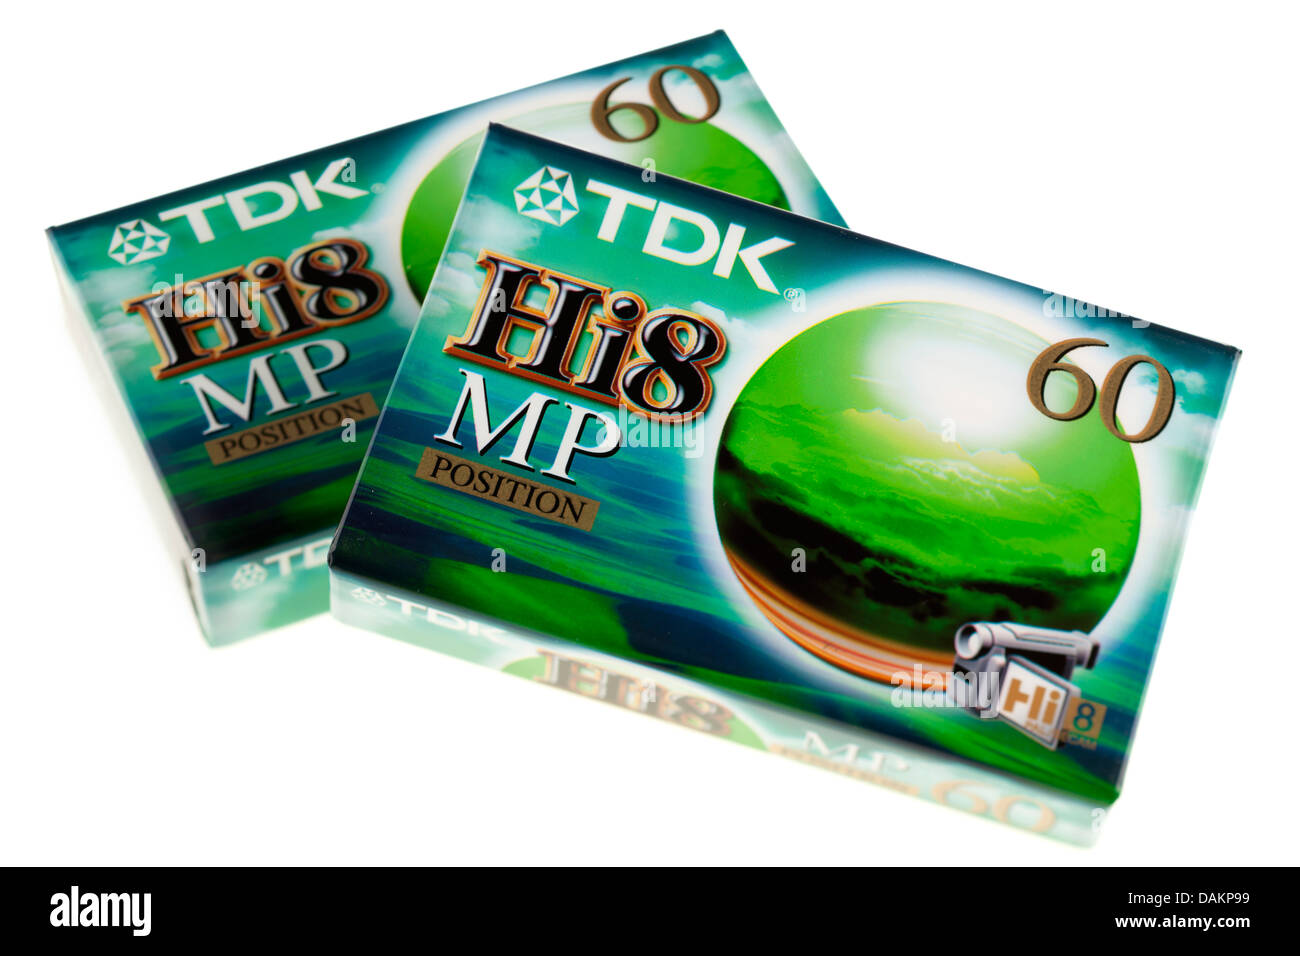 Two packs of 60 minute HI8 8mm camcorder analogue recording tape from TDK - Stock Image